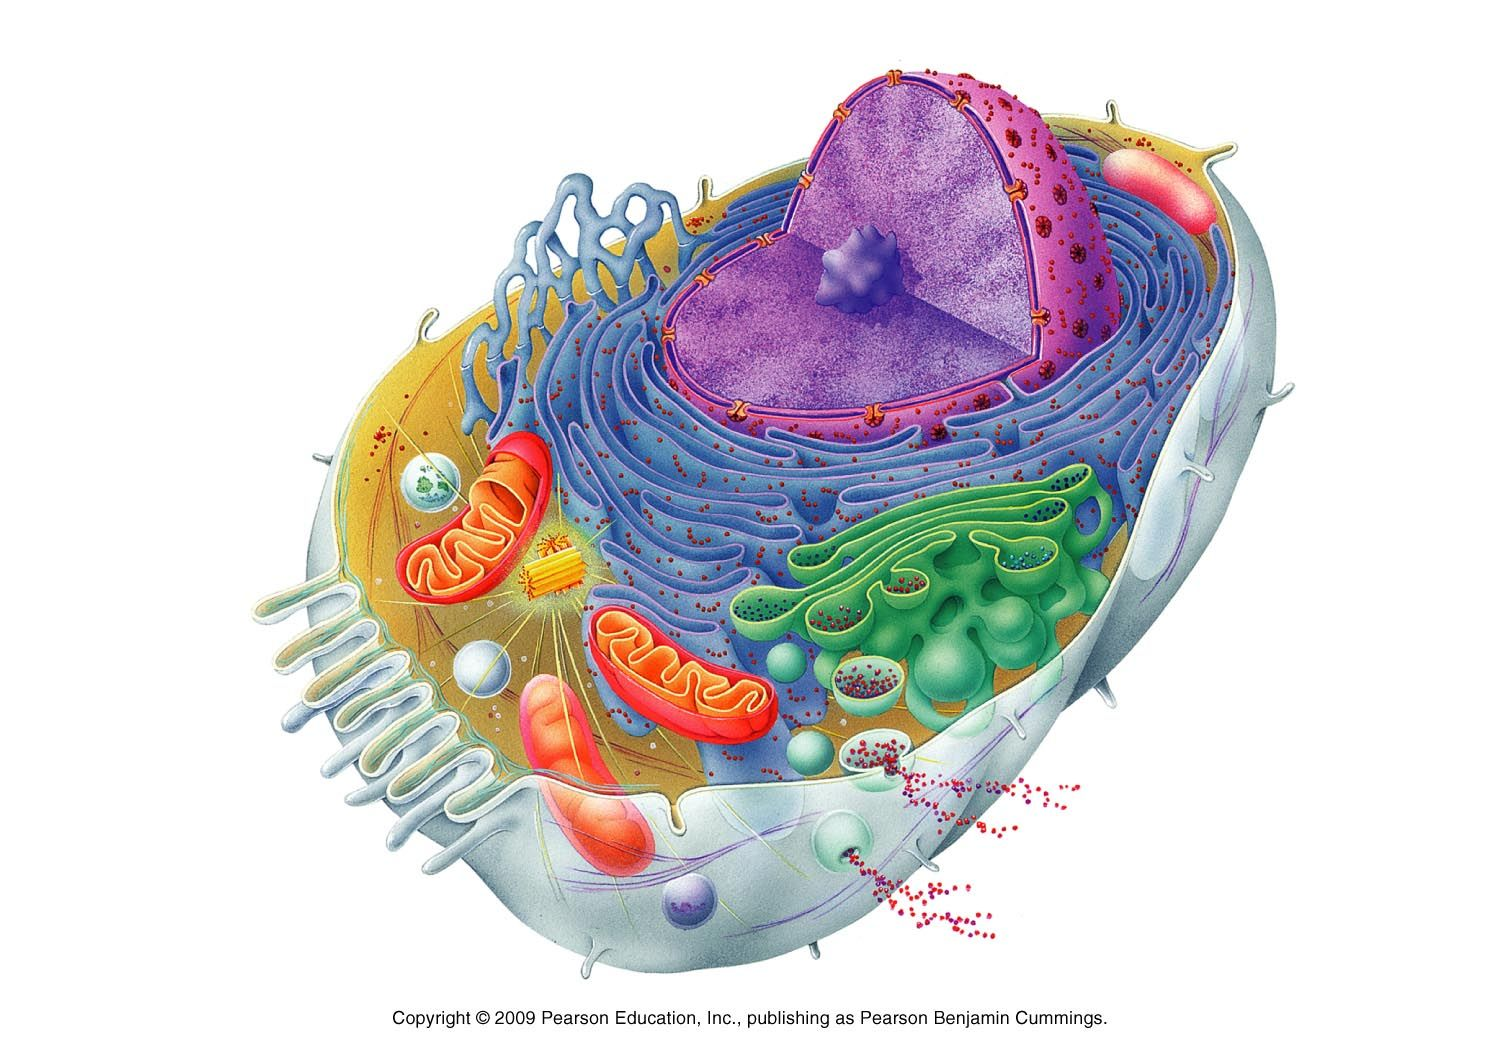 Biology Pictures Cell Structure Printable Human Cell Diagram Physiology Anatomy And Physiology